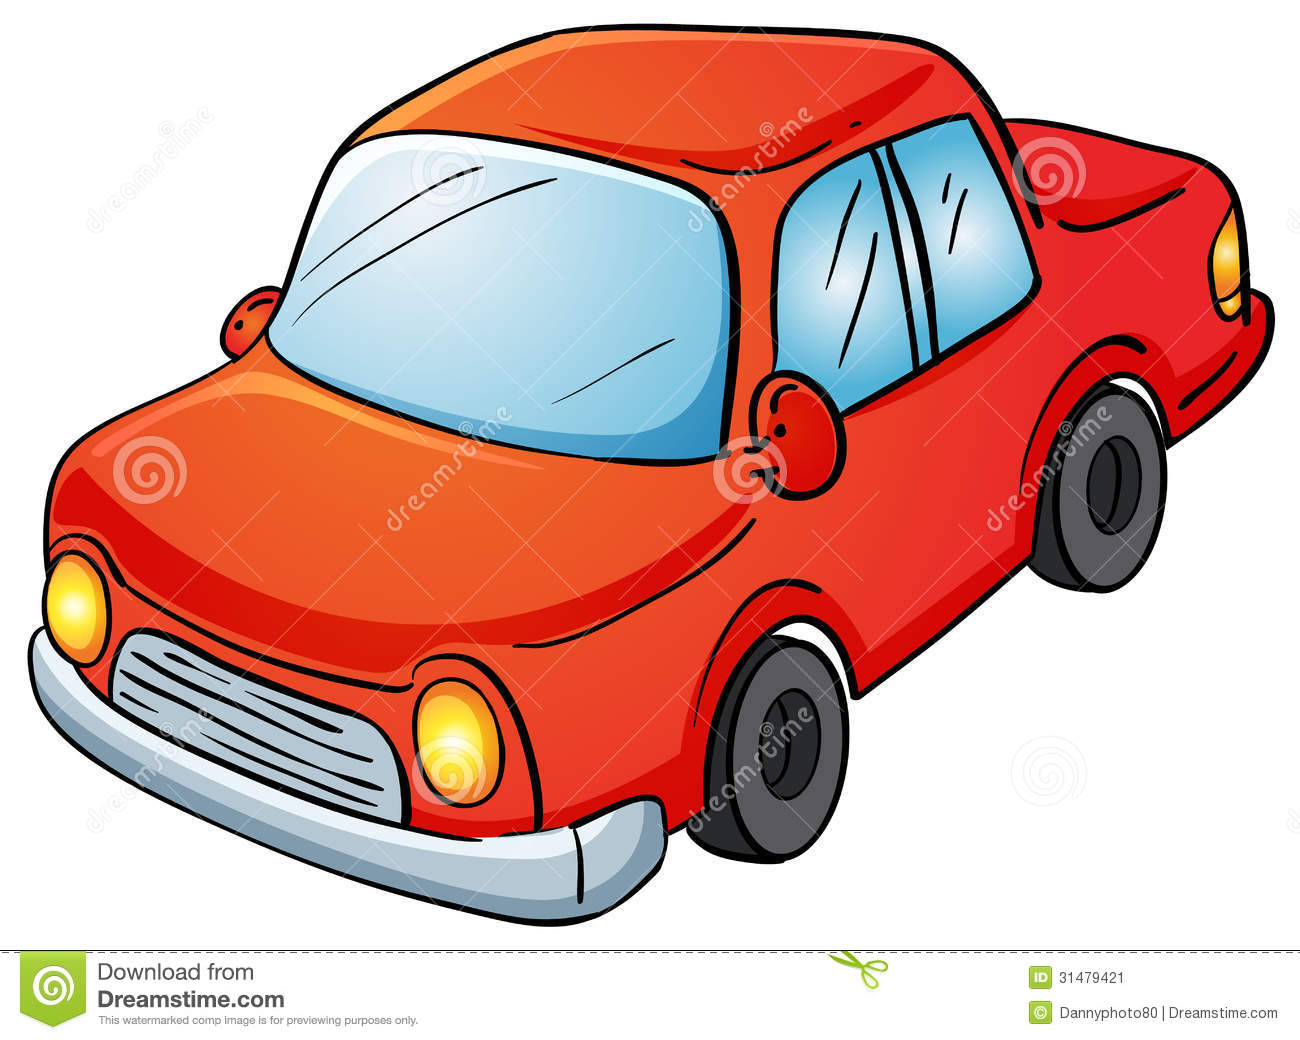 car clip art illustrations - photo #16